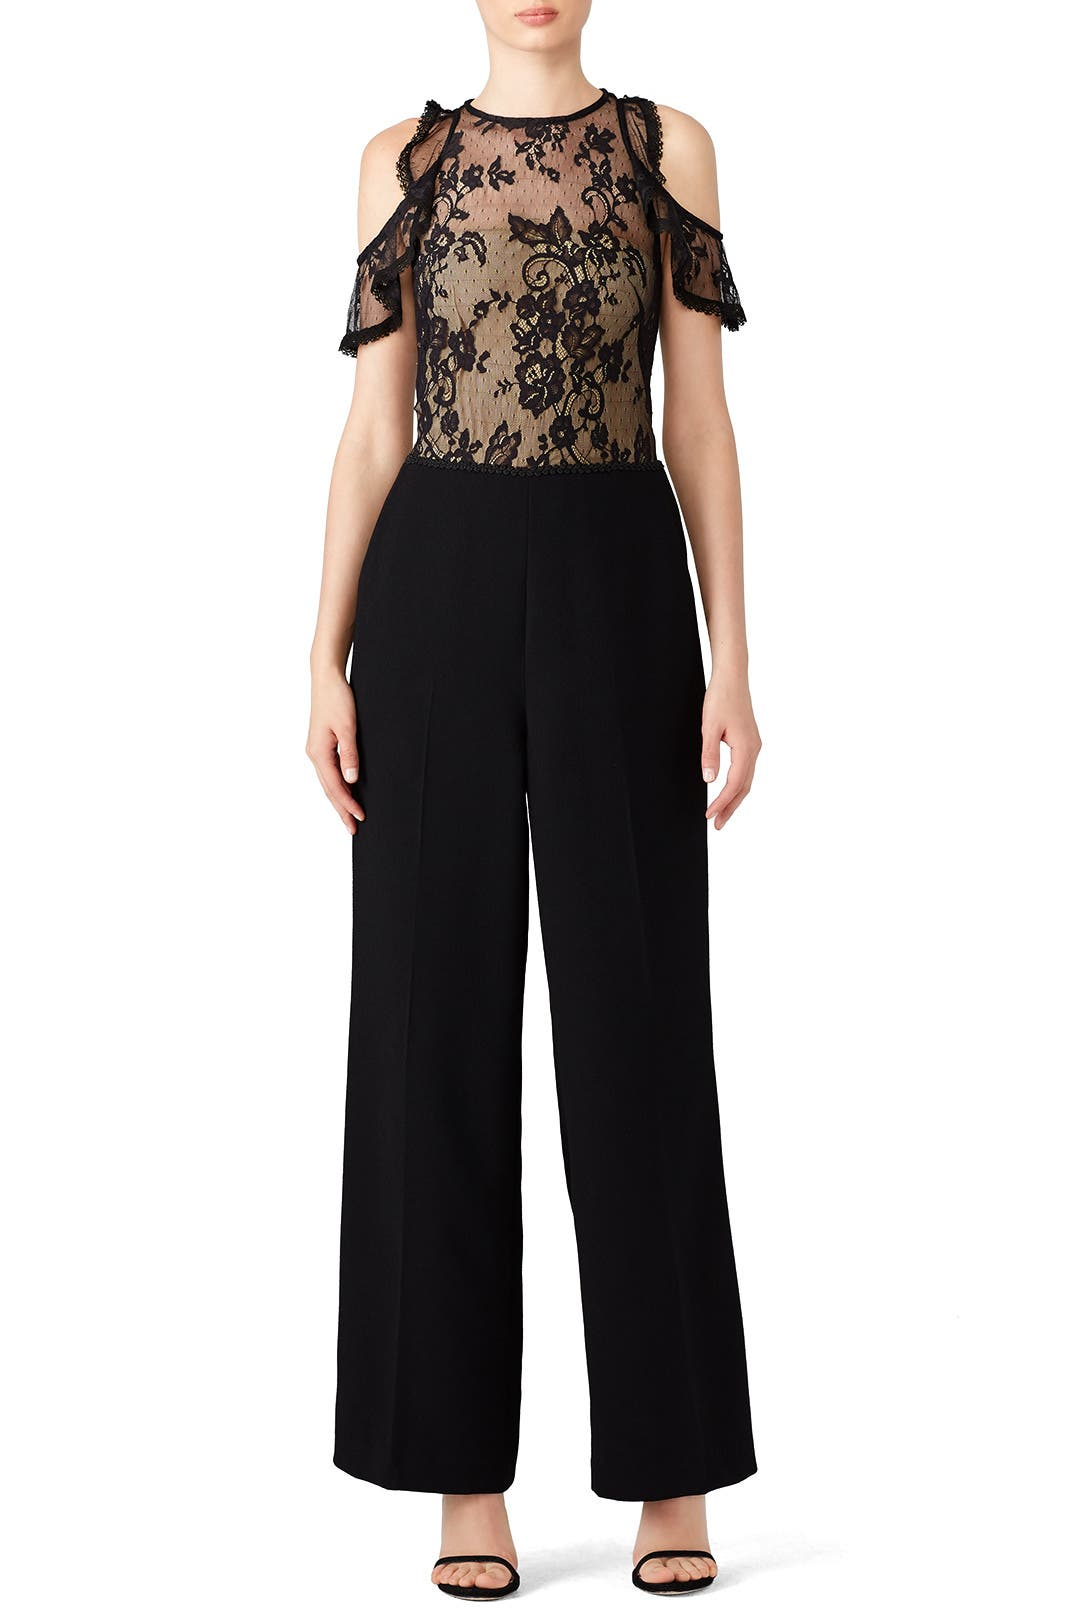 Black Lace Jumpsuit by Slate   Willow for  39  fc0a51637